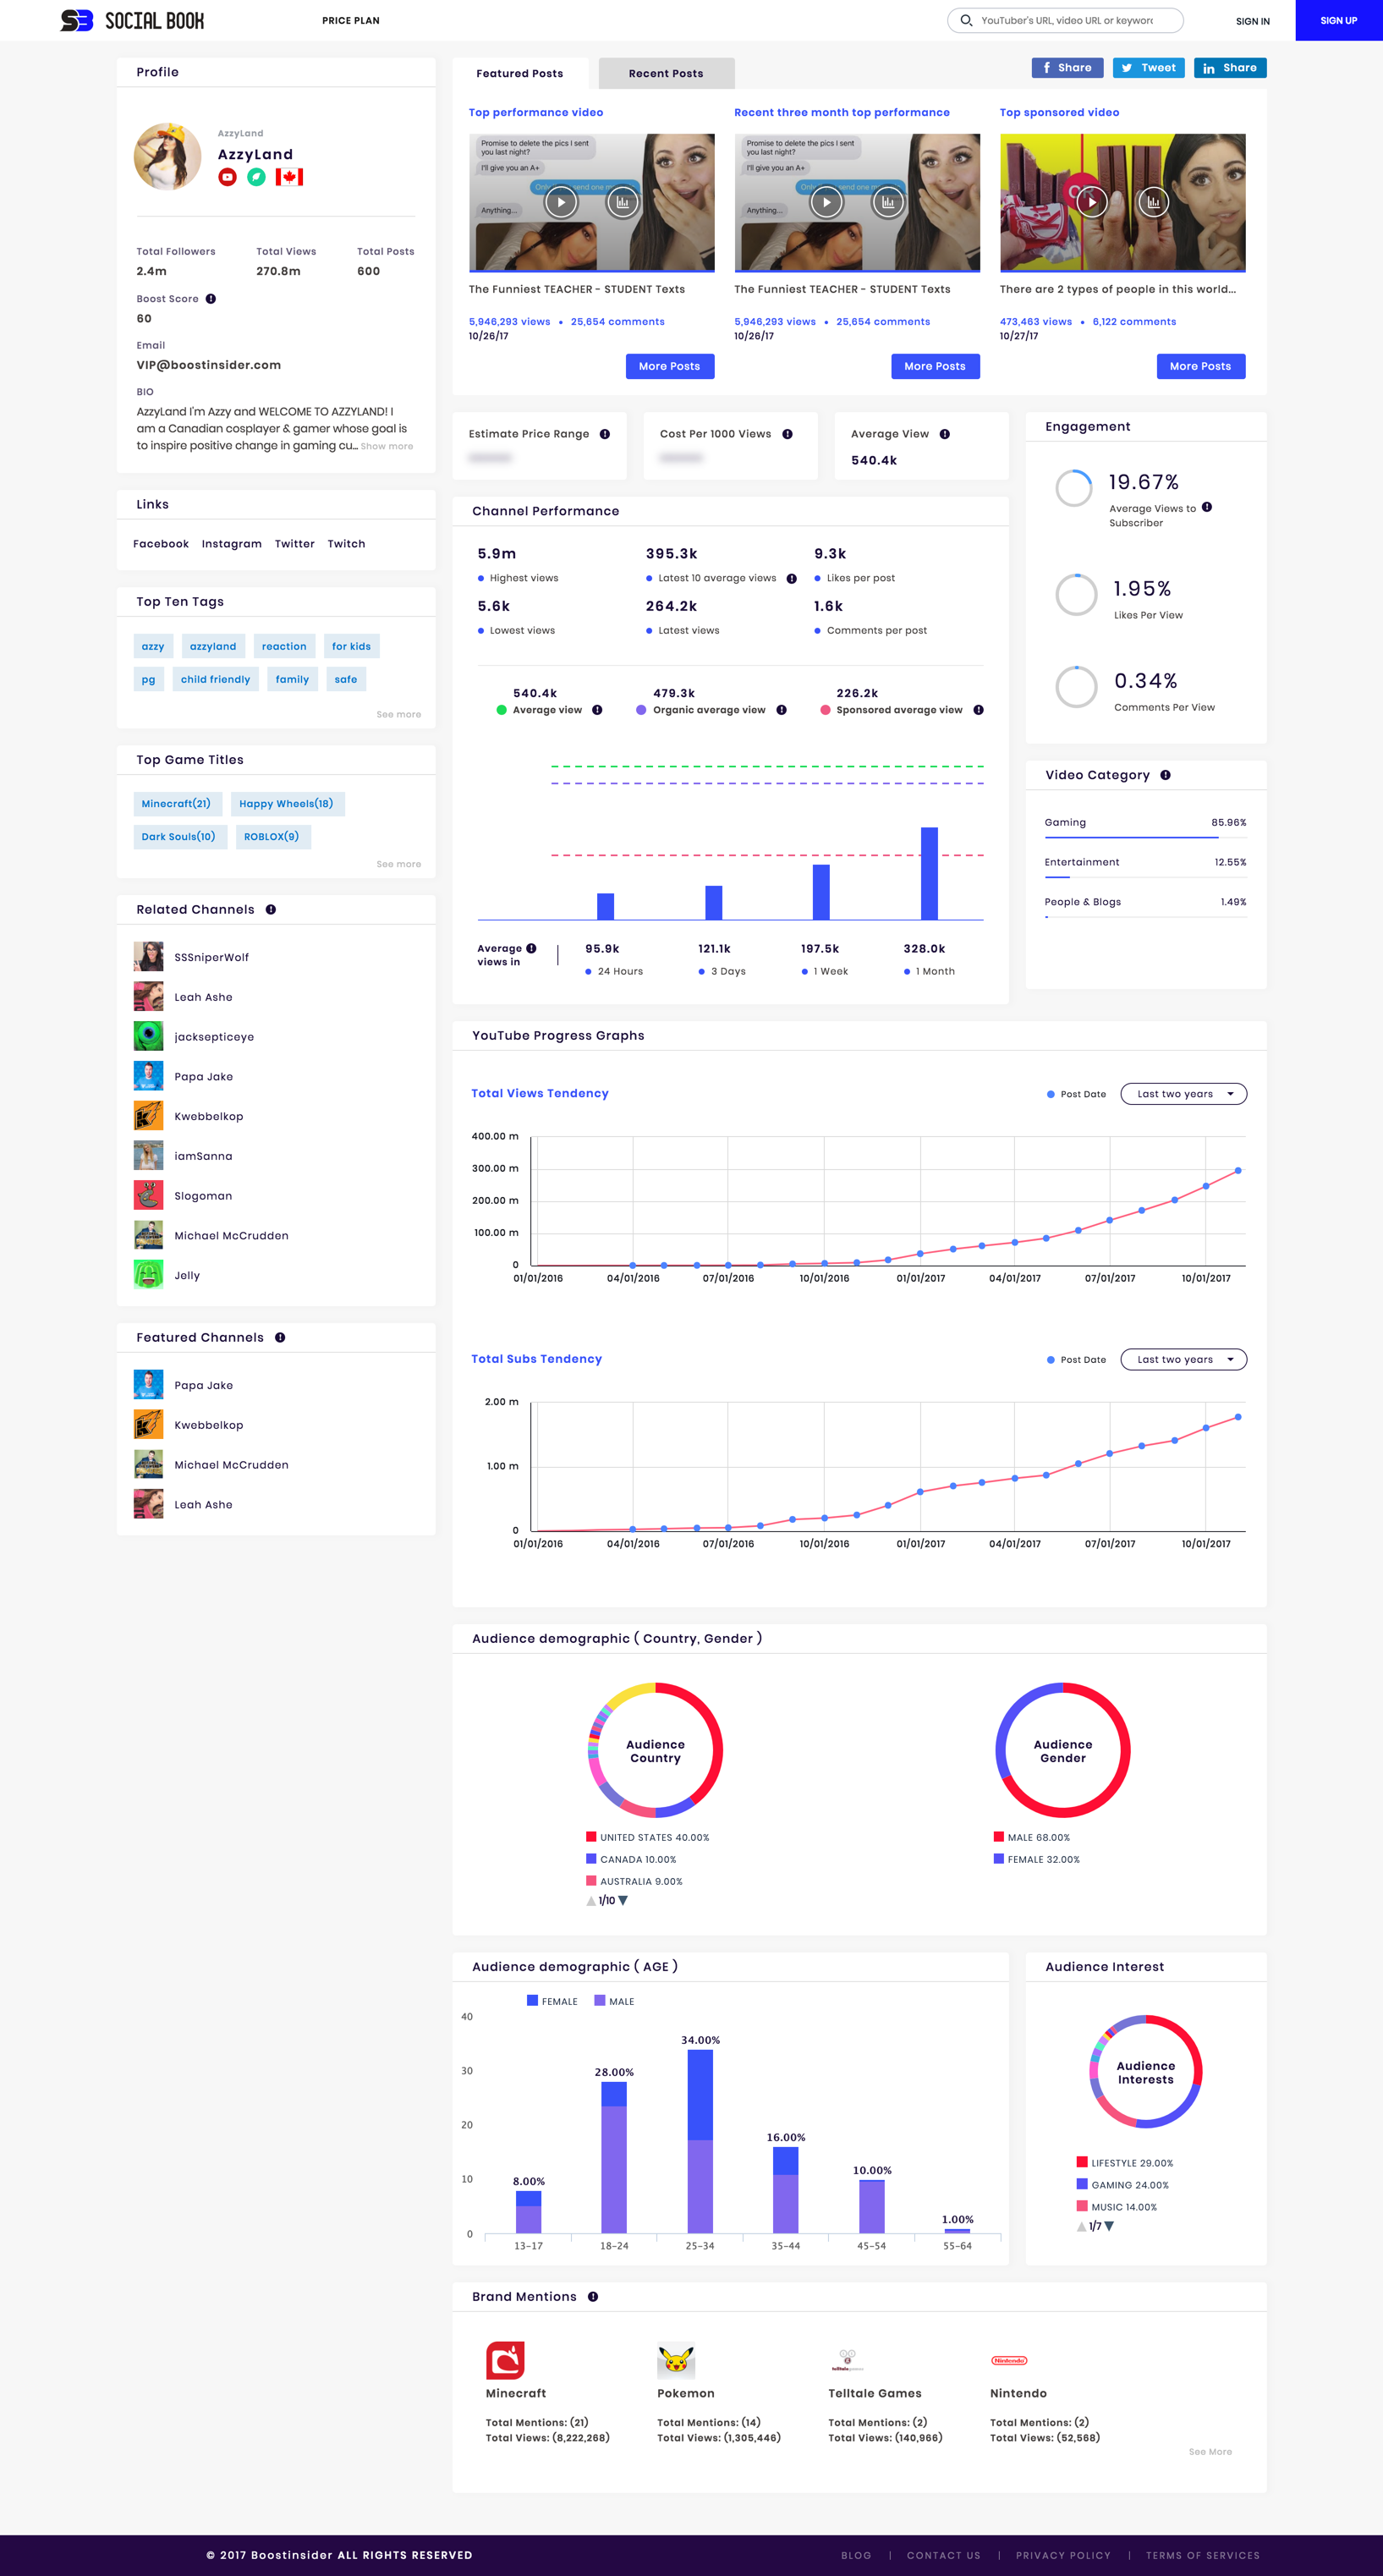 SocialBook sample profile